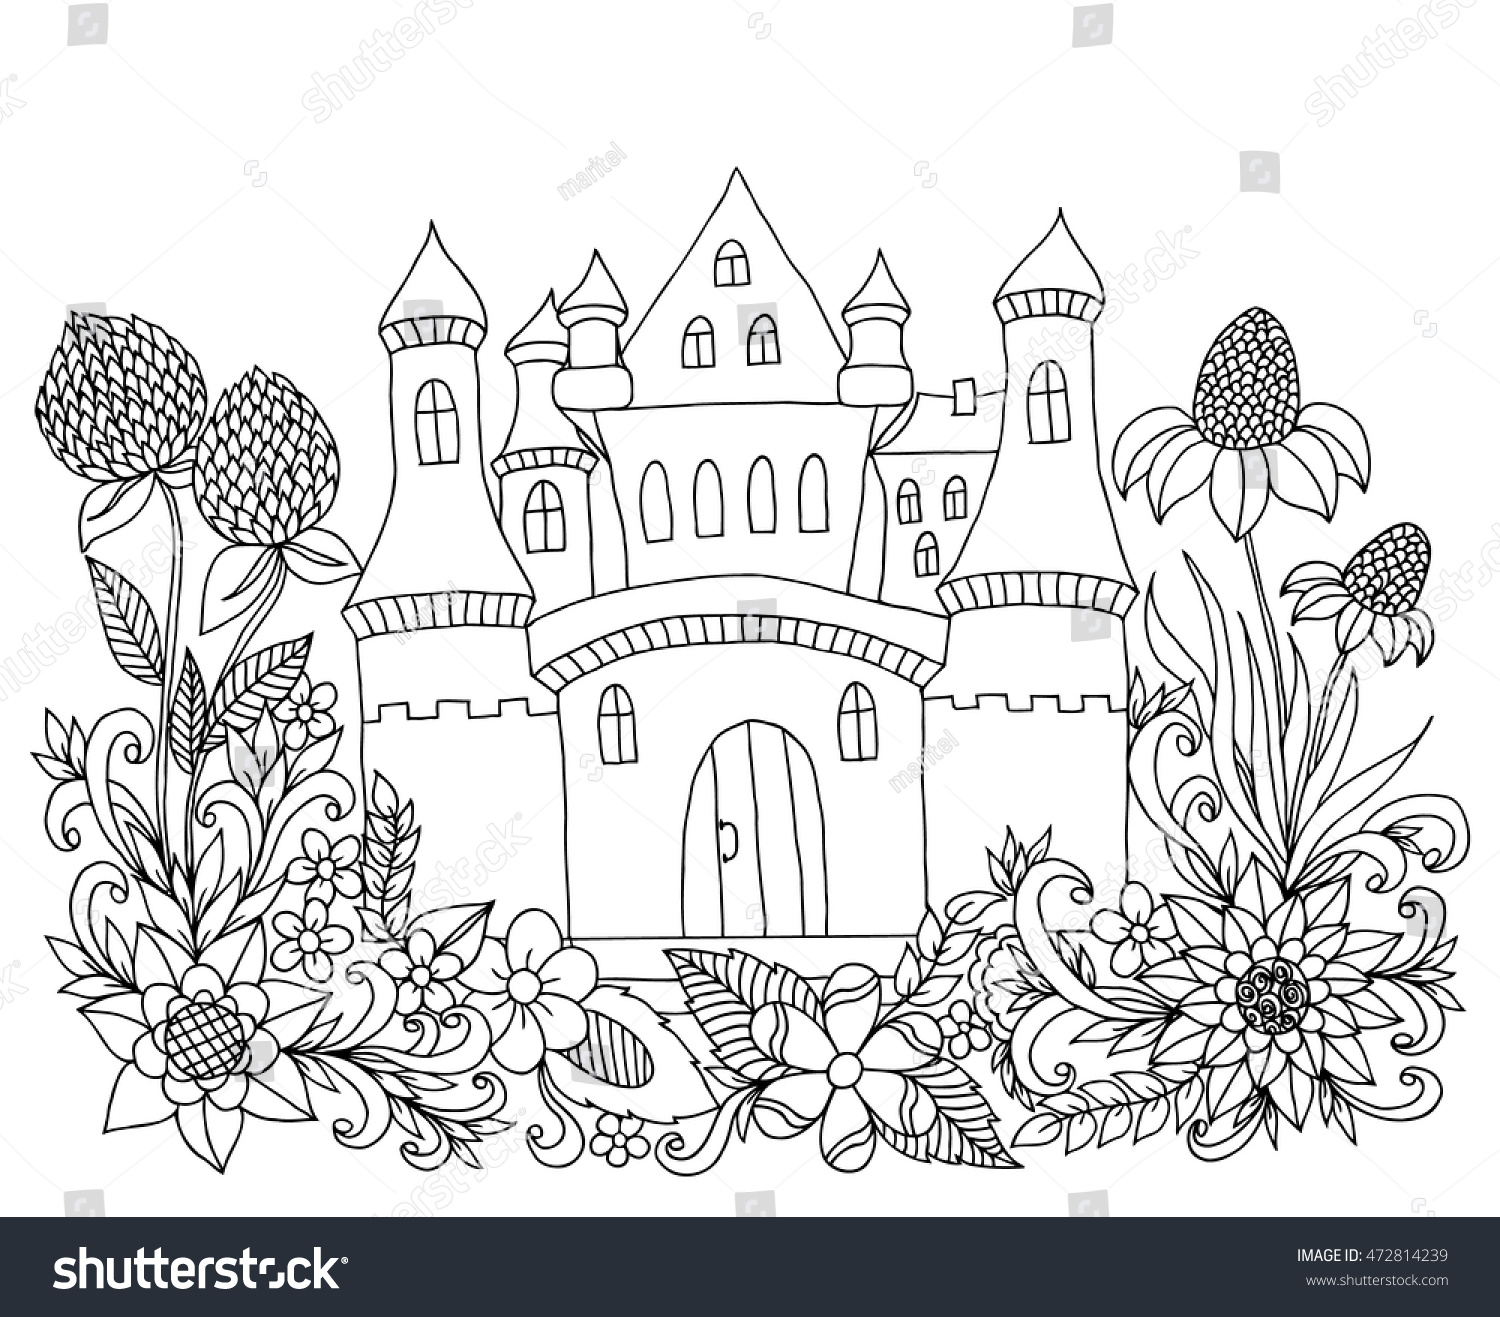 Coloring book landmark for adults - Vector Illustration Zen Tangle Castle Among The Flowers Coloring Book Anti Stress For Adults